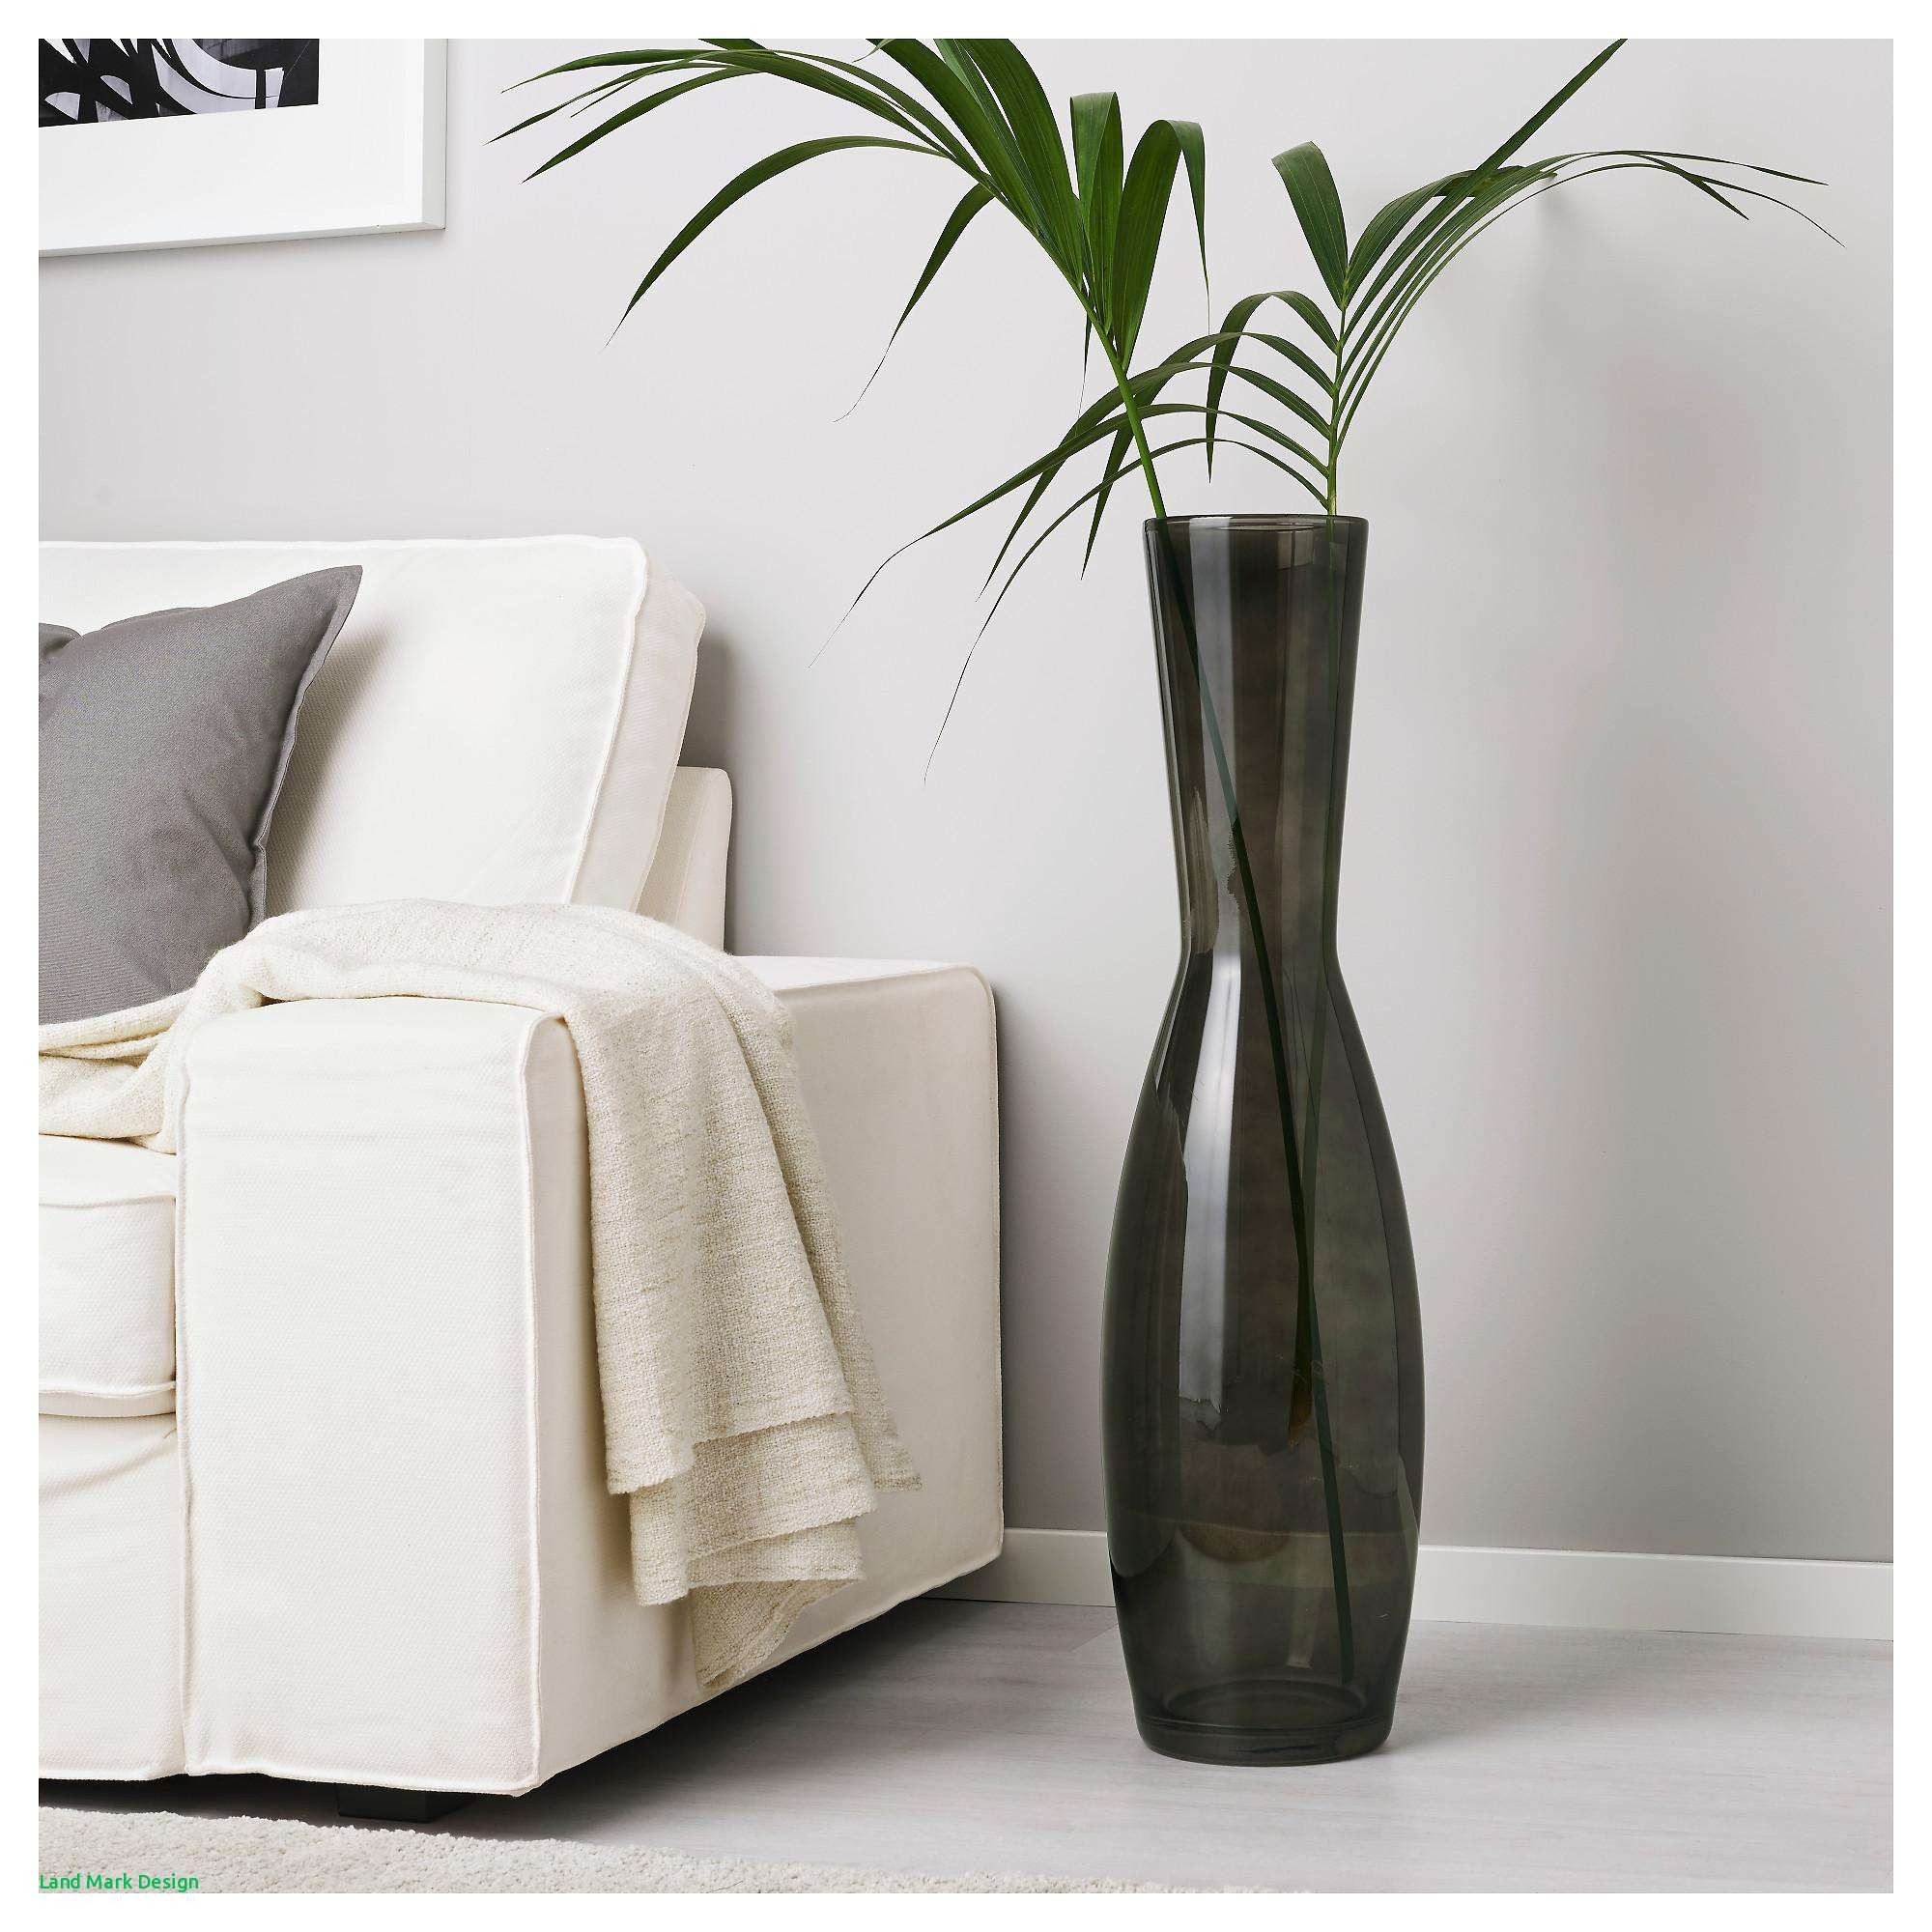 large modern floor vases of large white floor vase gallery ikea floor vases design vases in large white floor vase gallery ikea floor vases design of large white floor vase gallery ikea